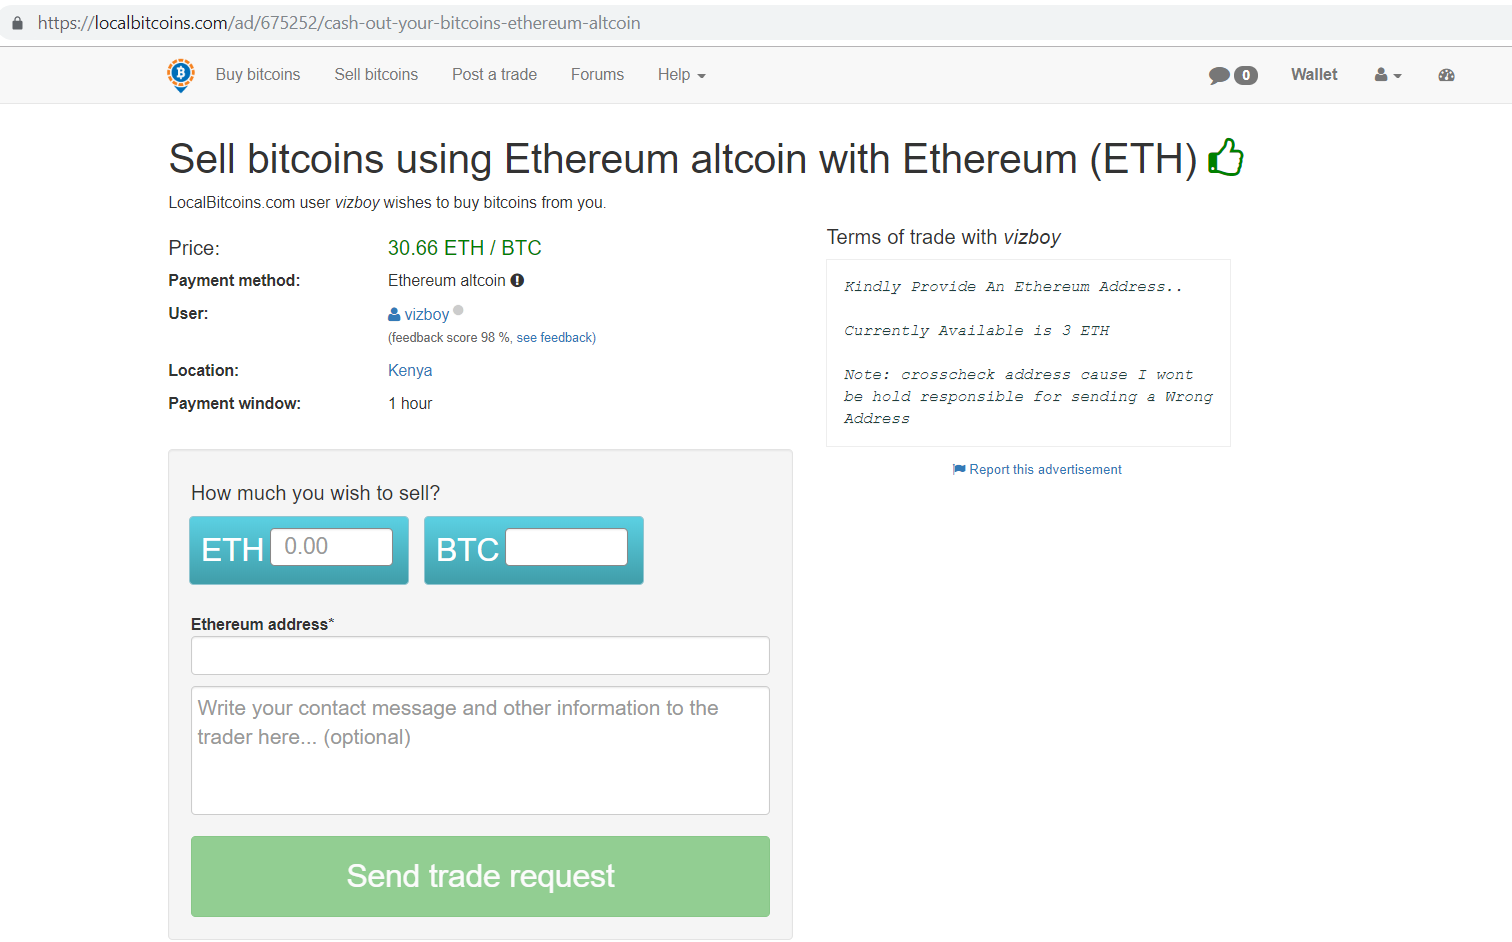 Localbitcoins.com sell bitcoins using ethereum Altcoins with ethereum (ETH).